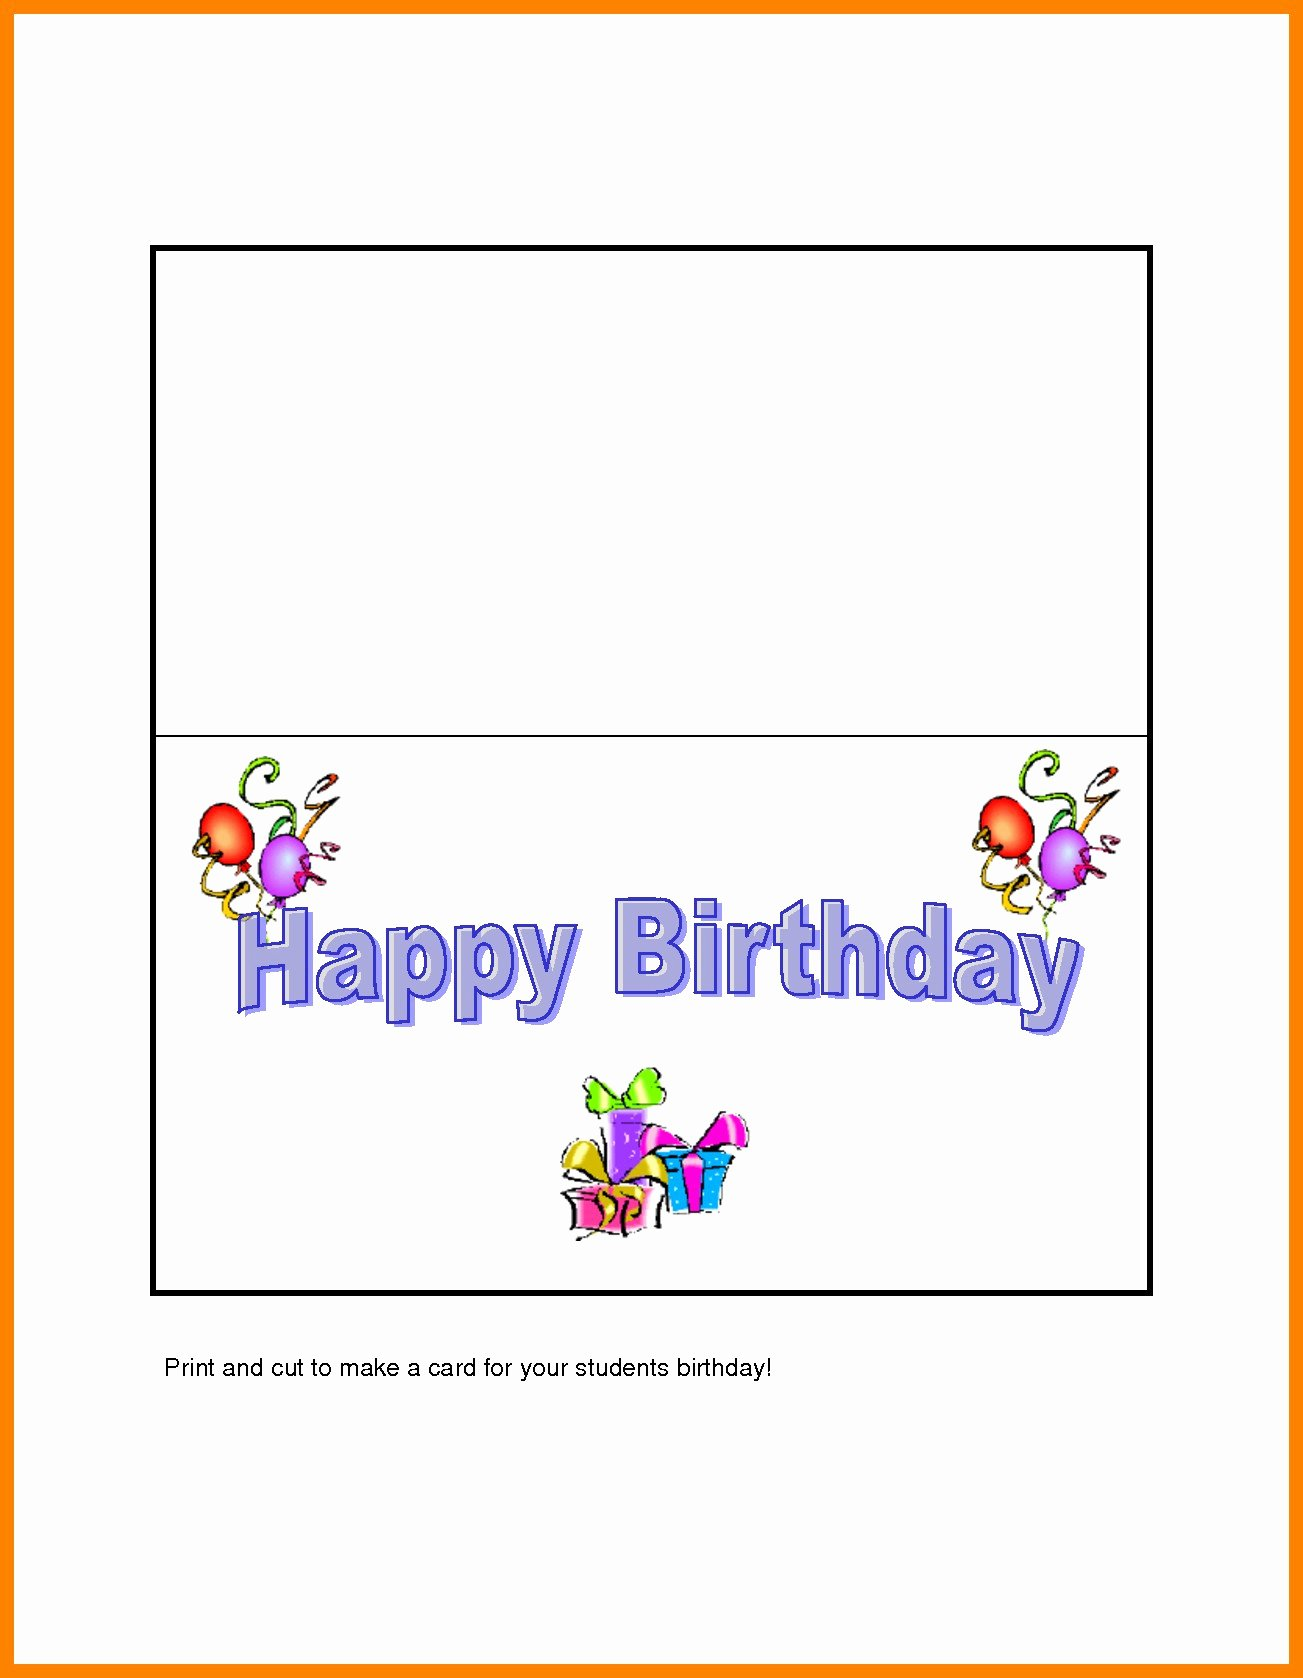 Quarter Fold Cards Template New Quarter Fold Greeting Card Template